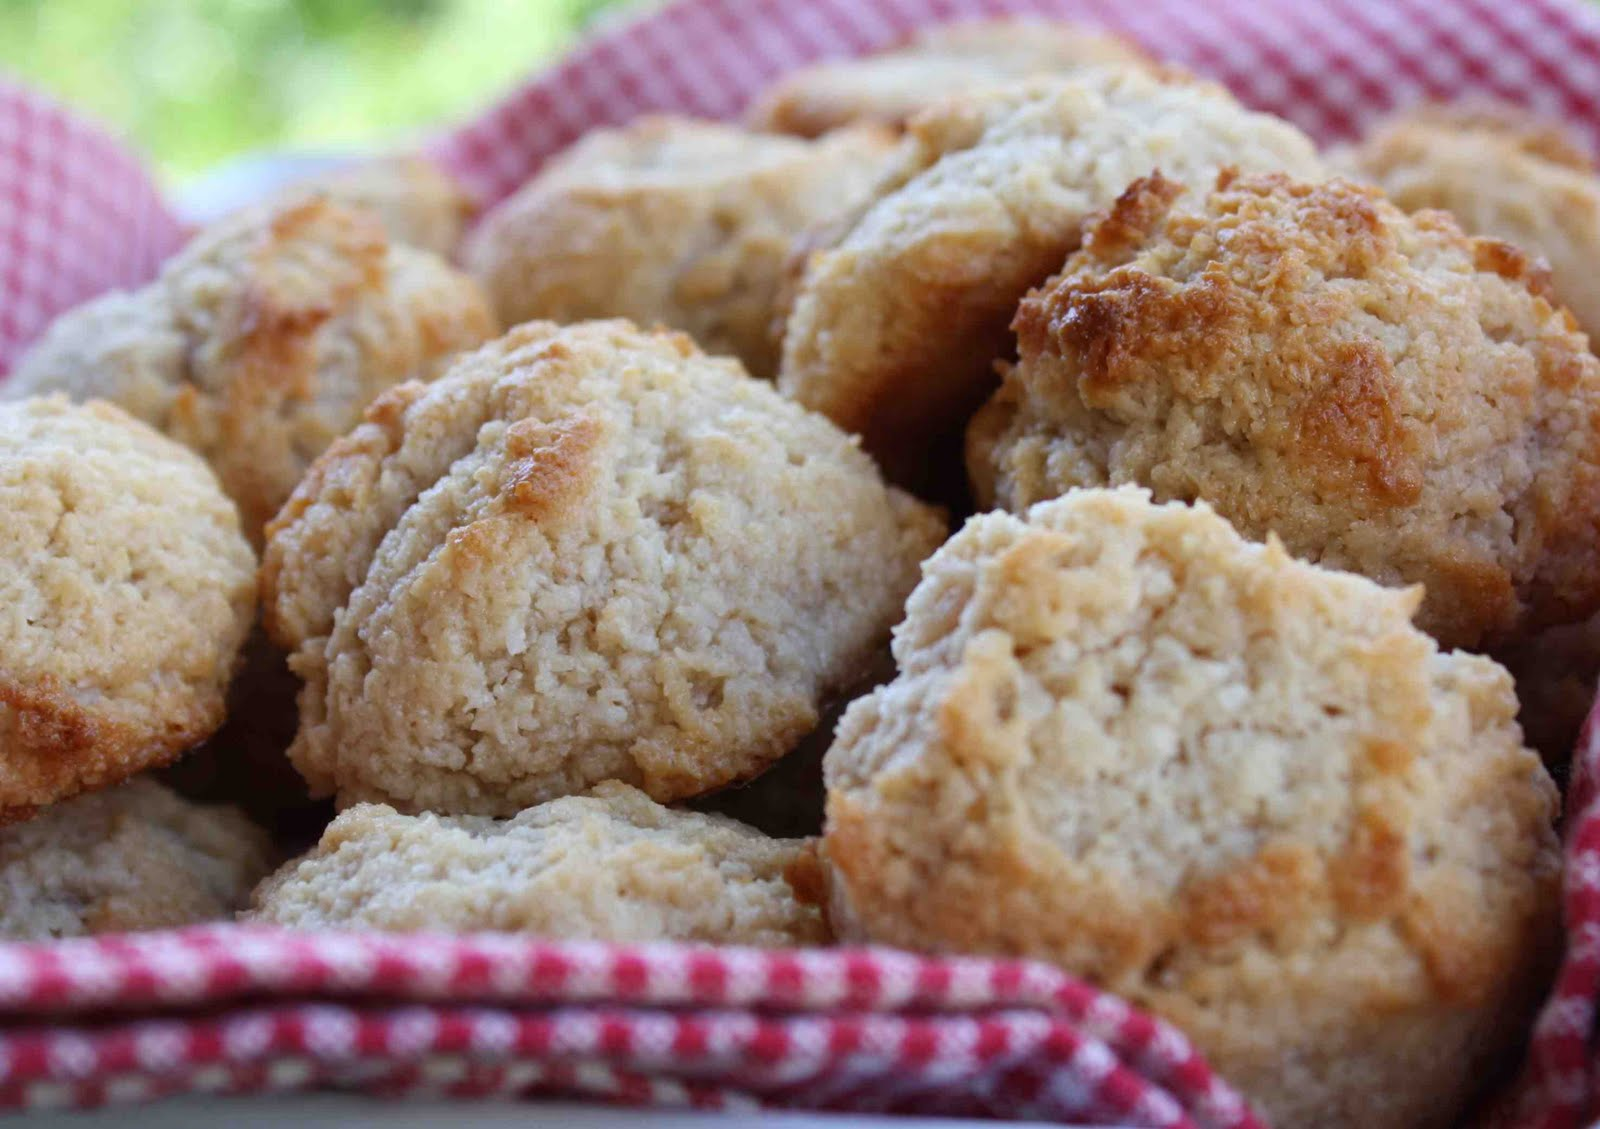 Keeley's Maine Kitchen: Golden Coconut-Peanut Butter Macaroons